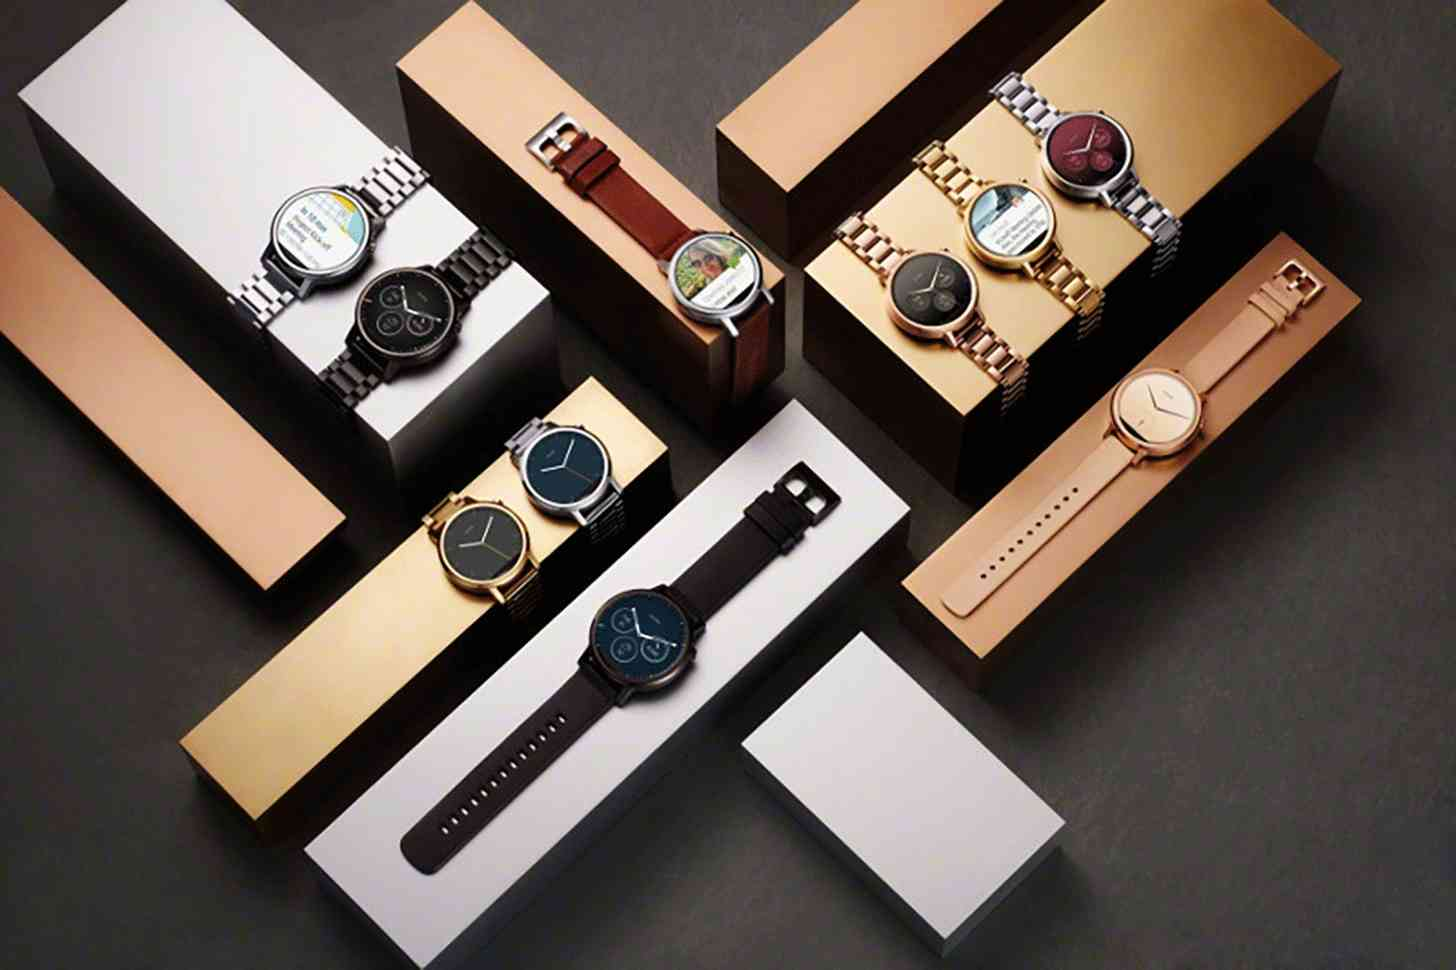 New Moto 360 Smartwatch Launched: All you need to know